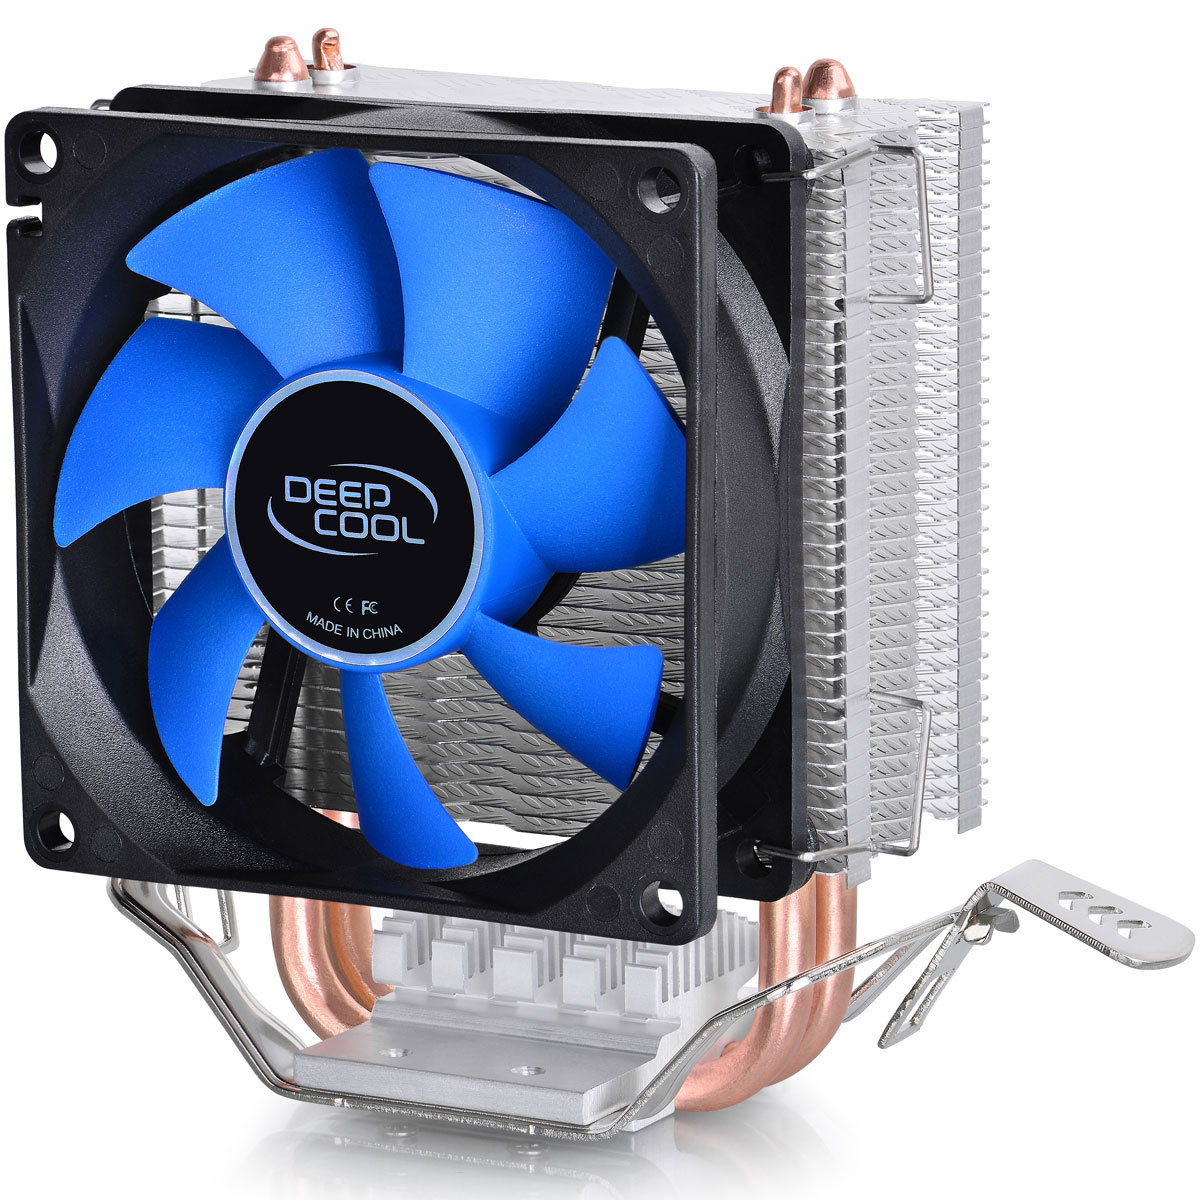 Deepcool Ice Edge Mini FS V2.0 кулер компьютерный